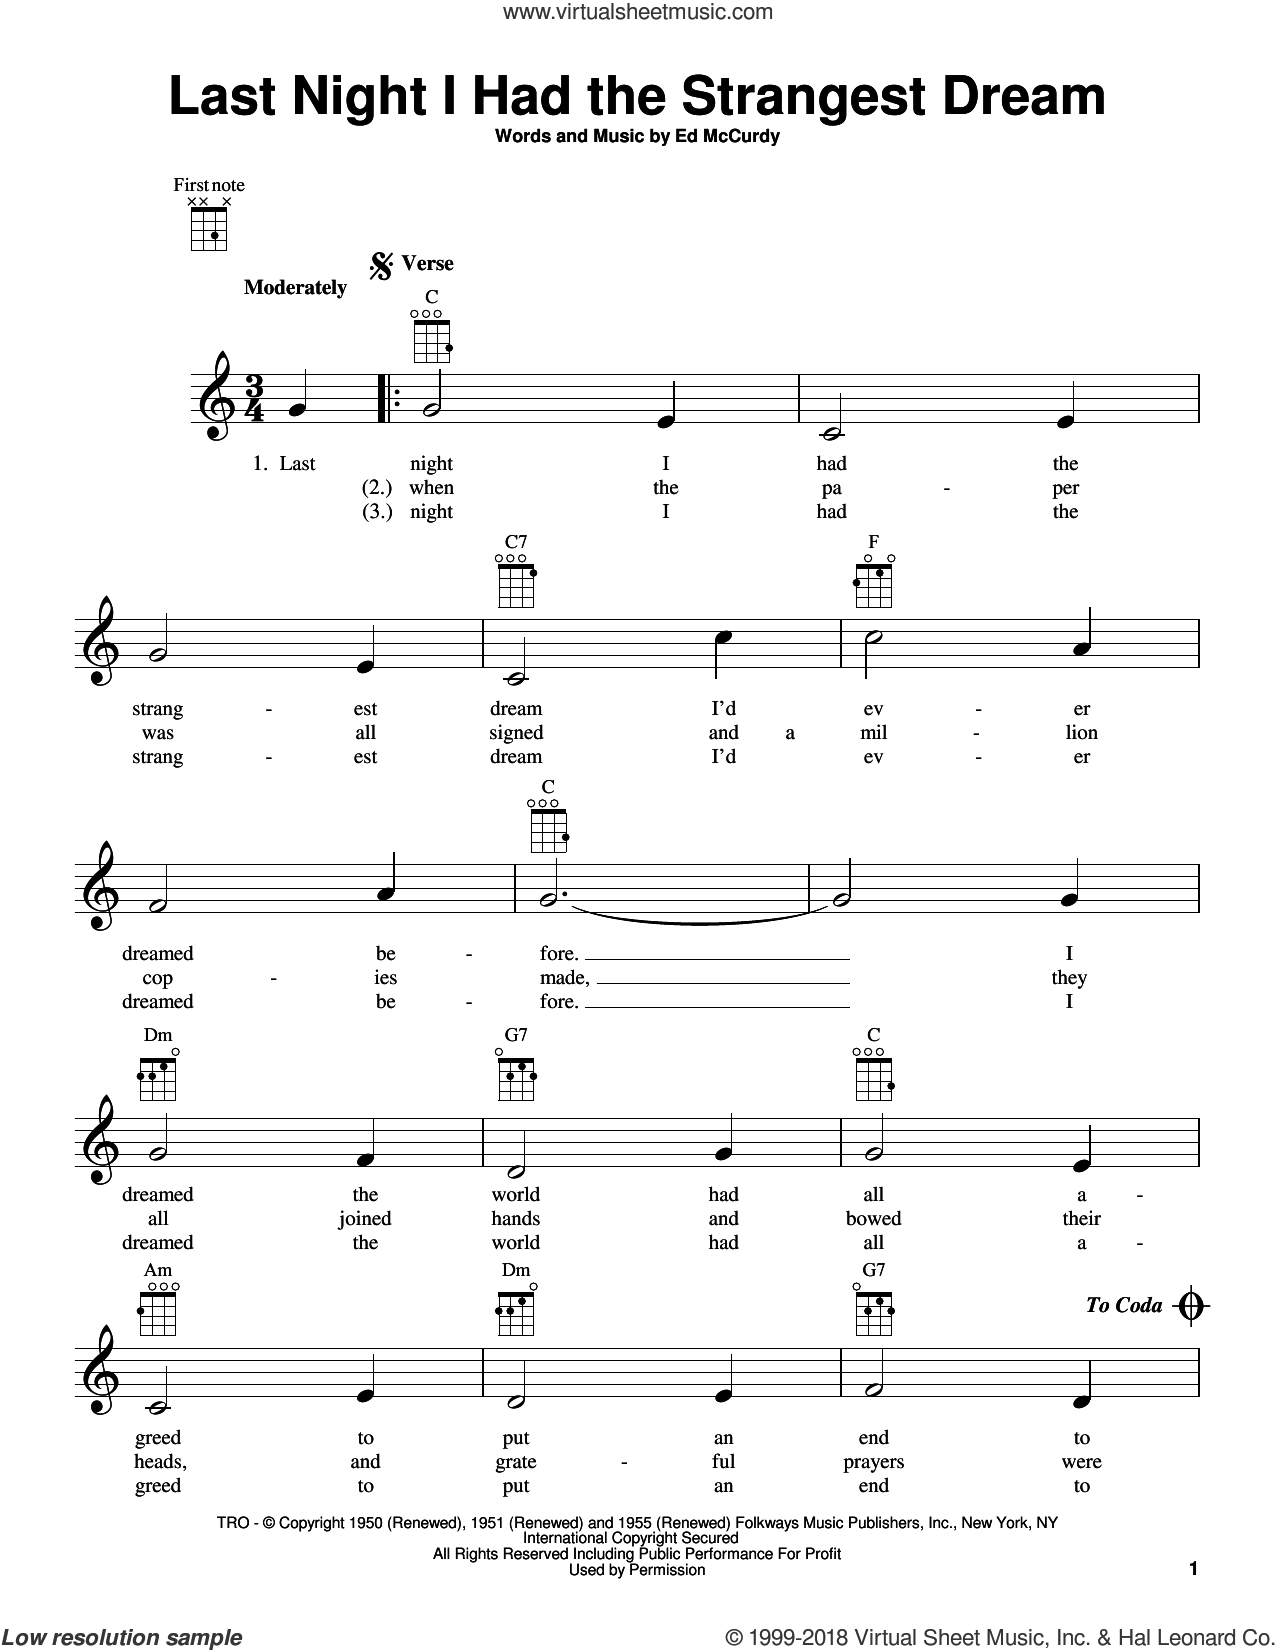 Last Night I Had The Strangest Dream sheet music for ukulele by Ed McCurdy and Simon & Garfunkel. Score Image Preview.